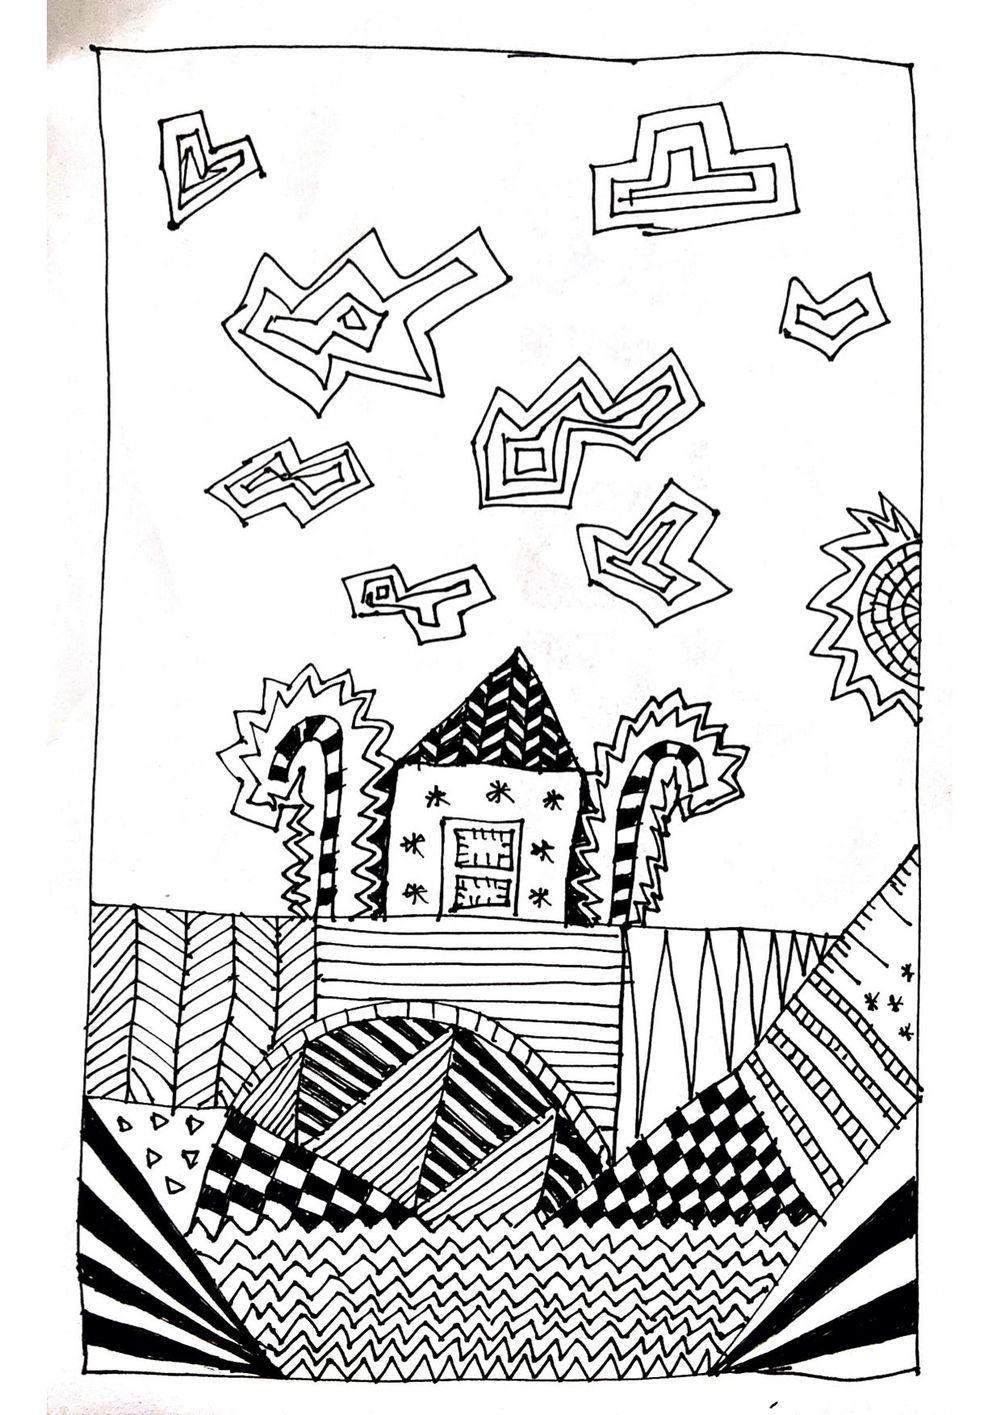 My doodles - image 3 - student project